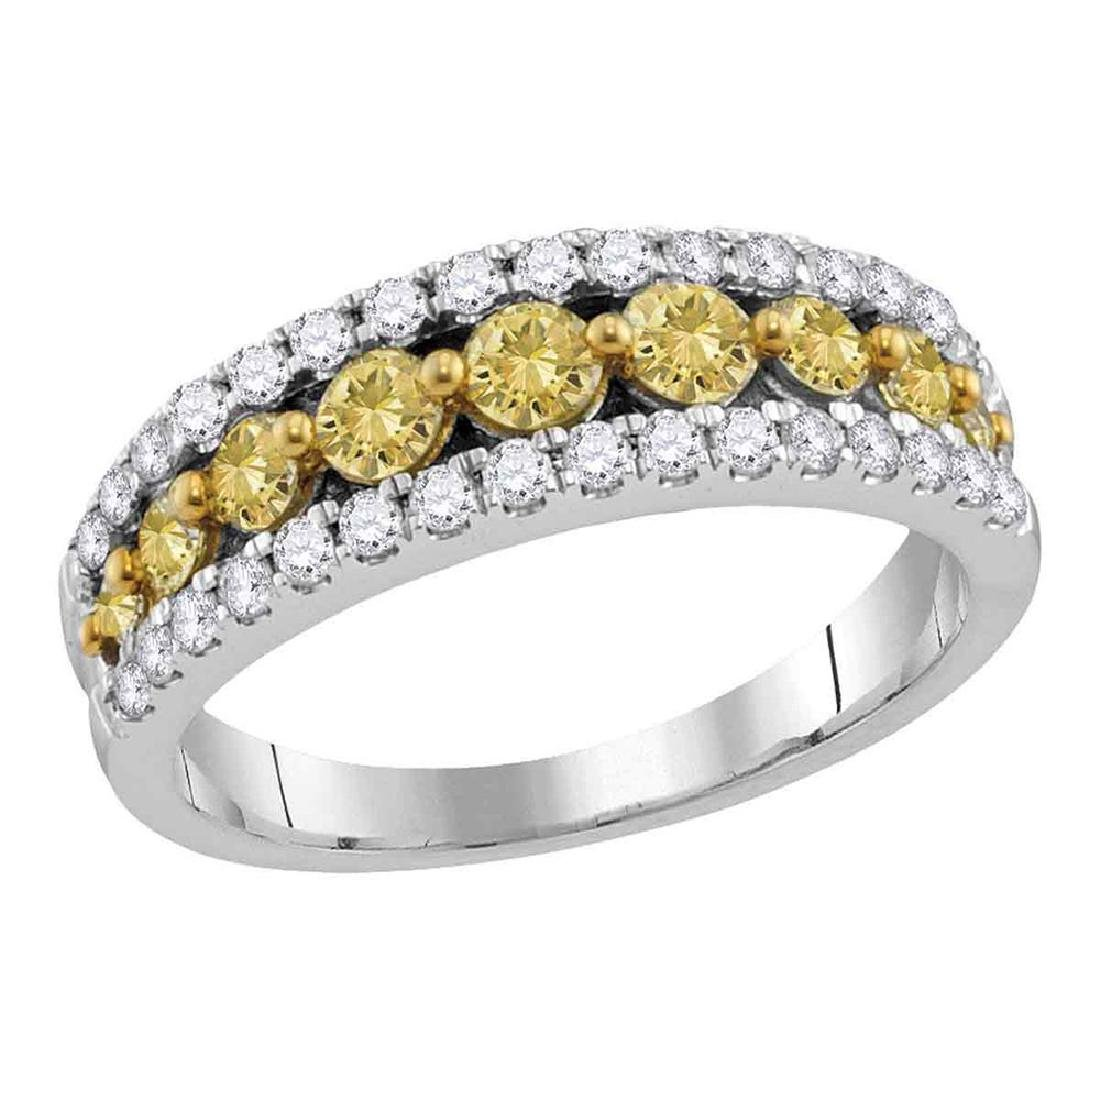 2.06 CTW Yellow Diamond Ring 14KT White Gold -